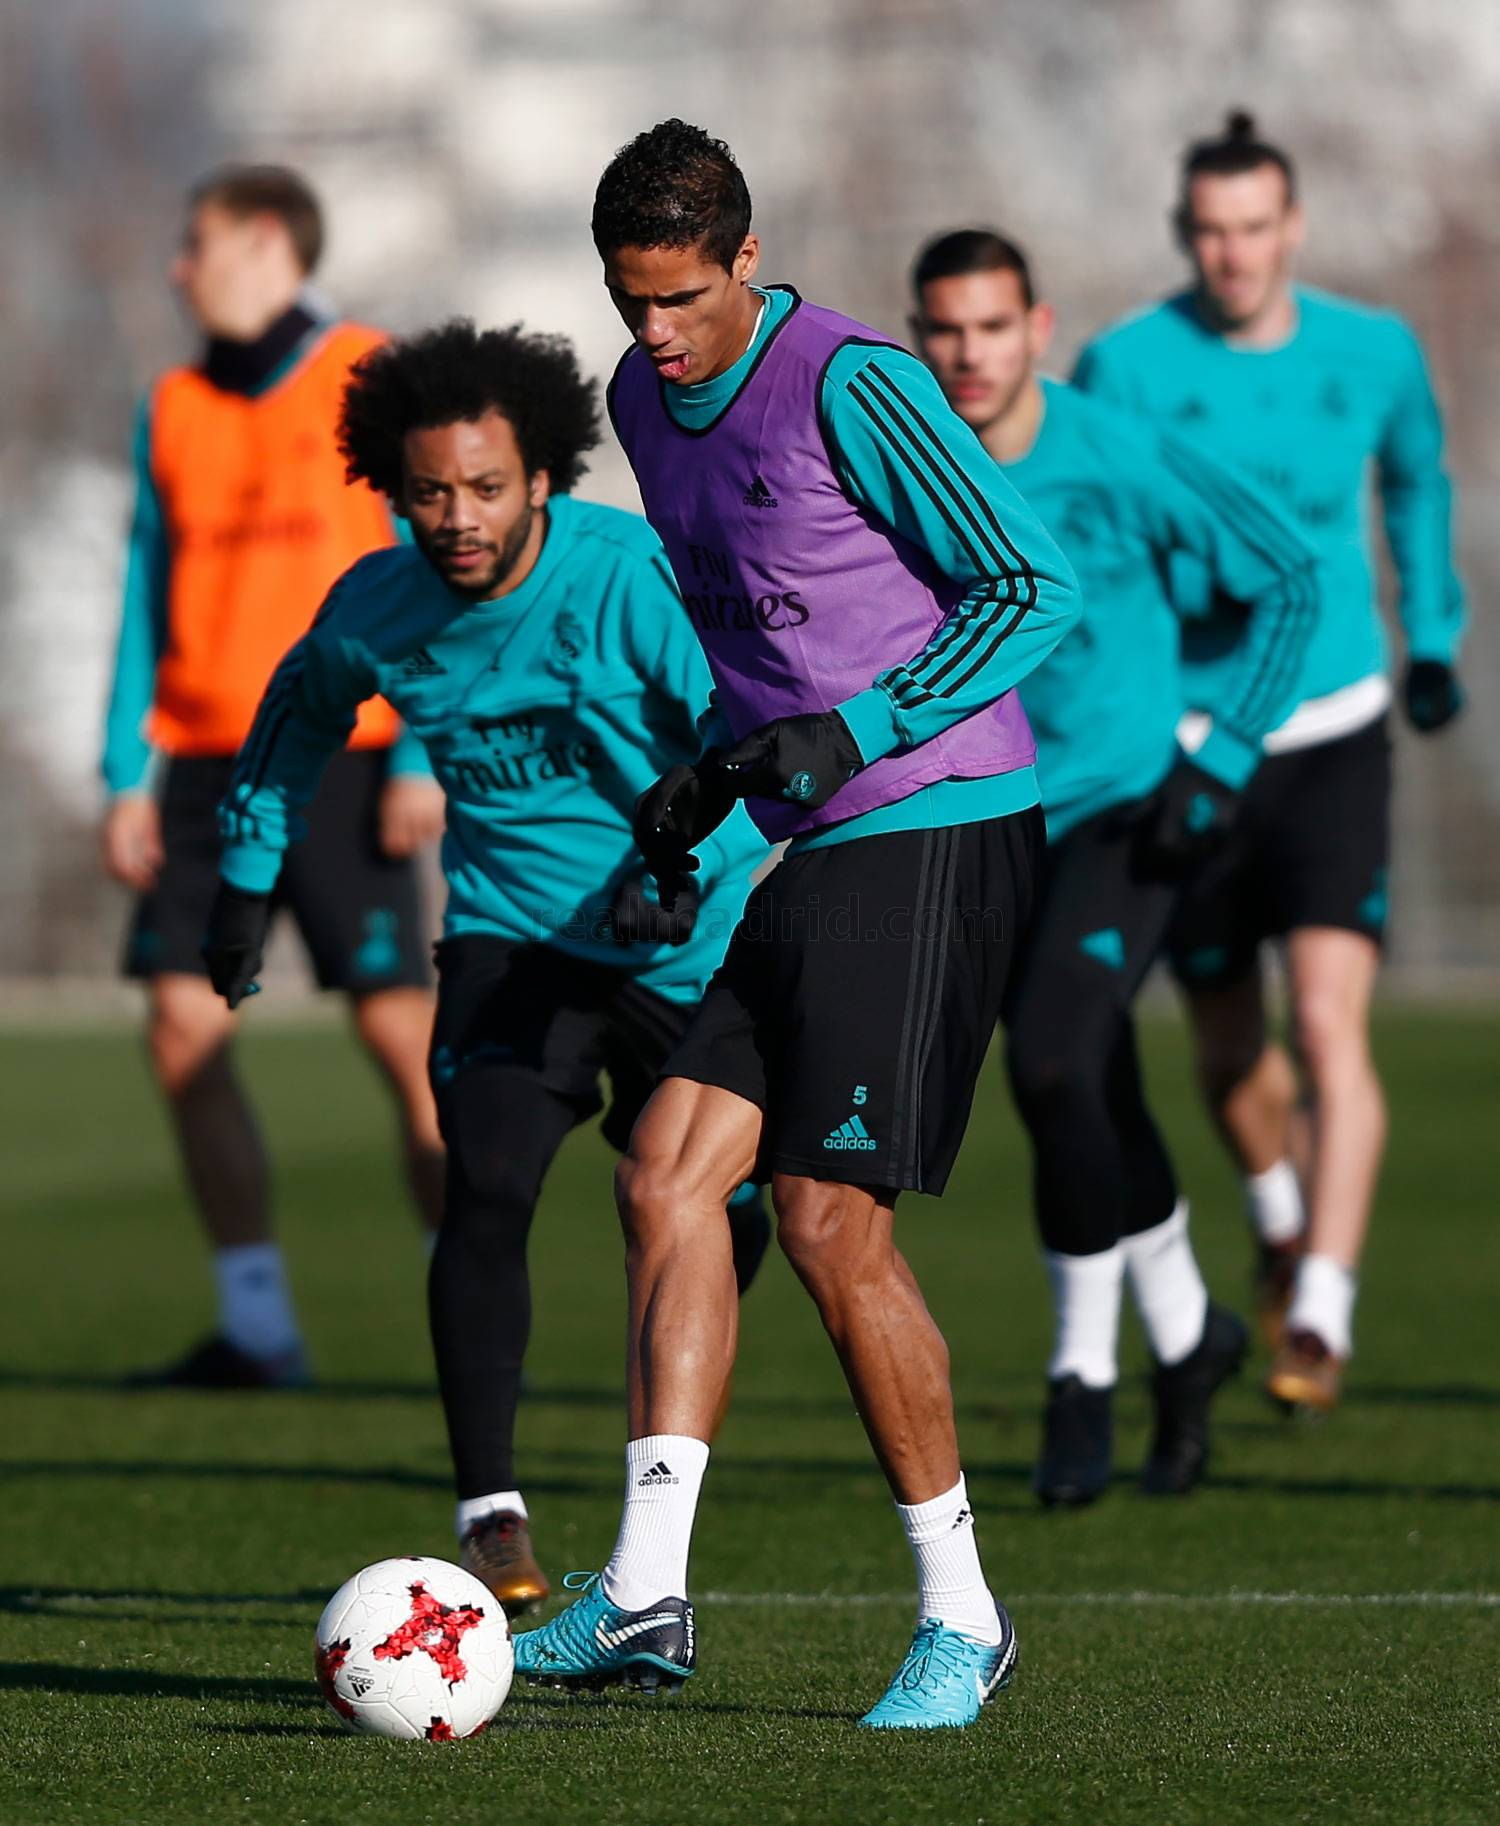 Real Madrid - Entrenamiento del Real Madrid - 16-01-2018